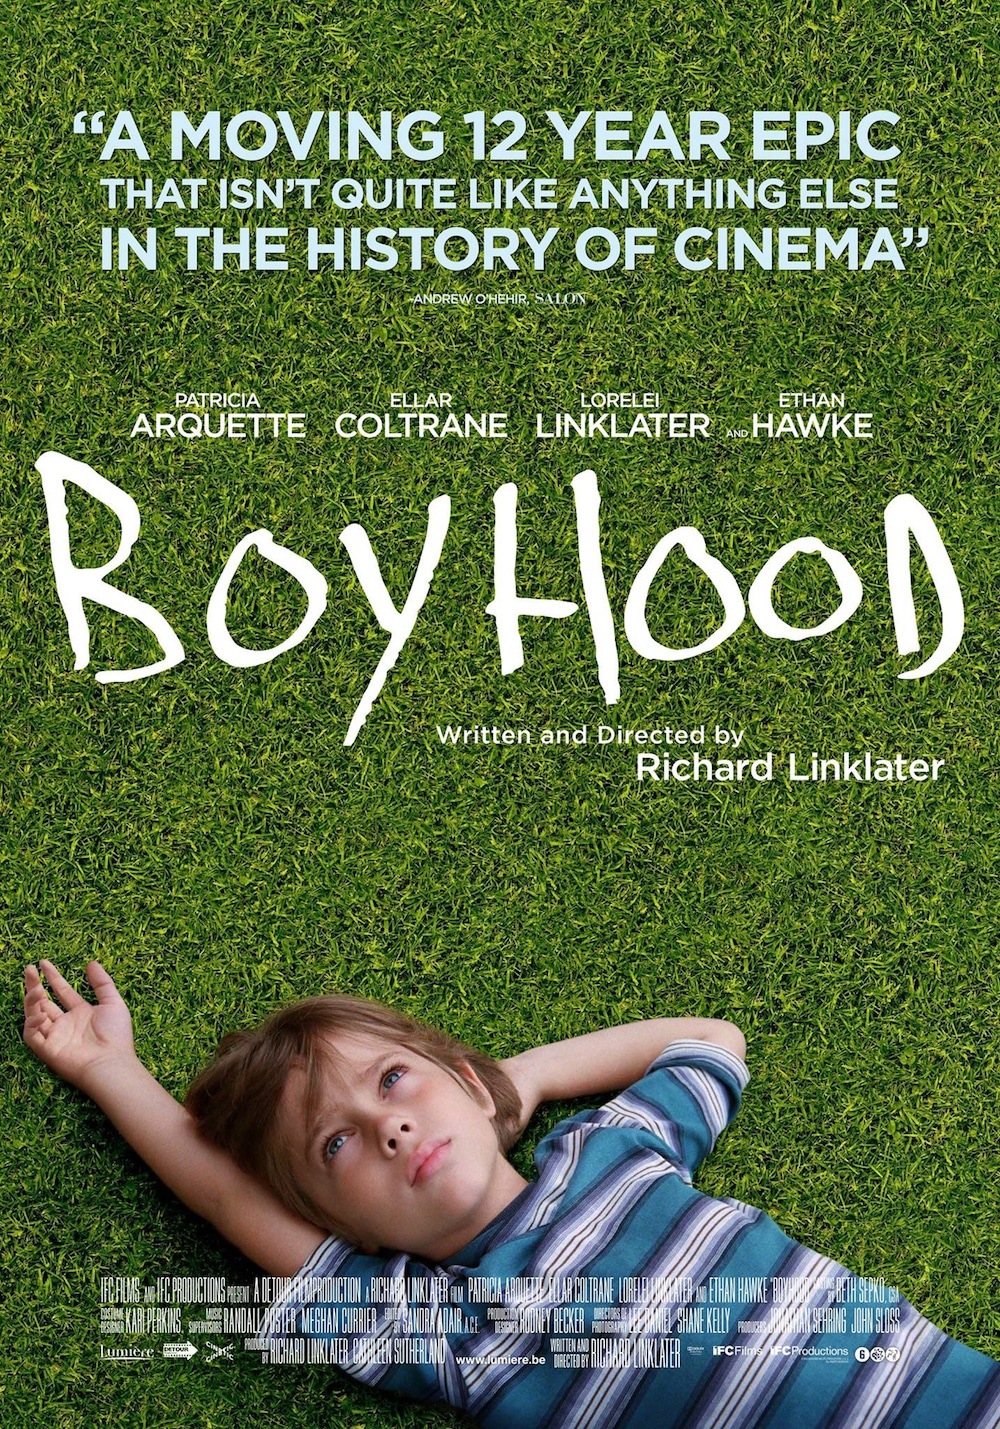 ethan hawke interview conversation richard linklater boyhood